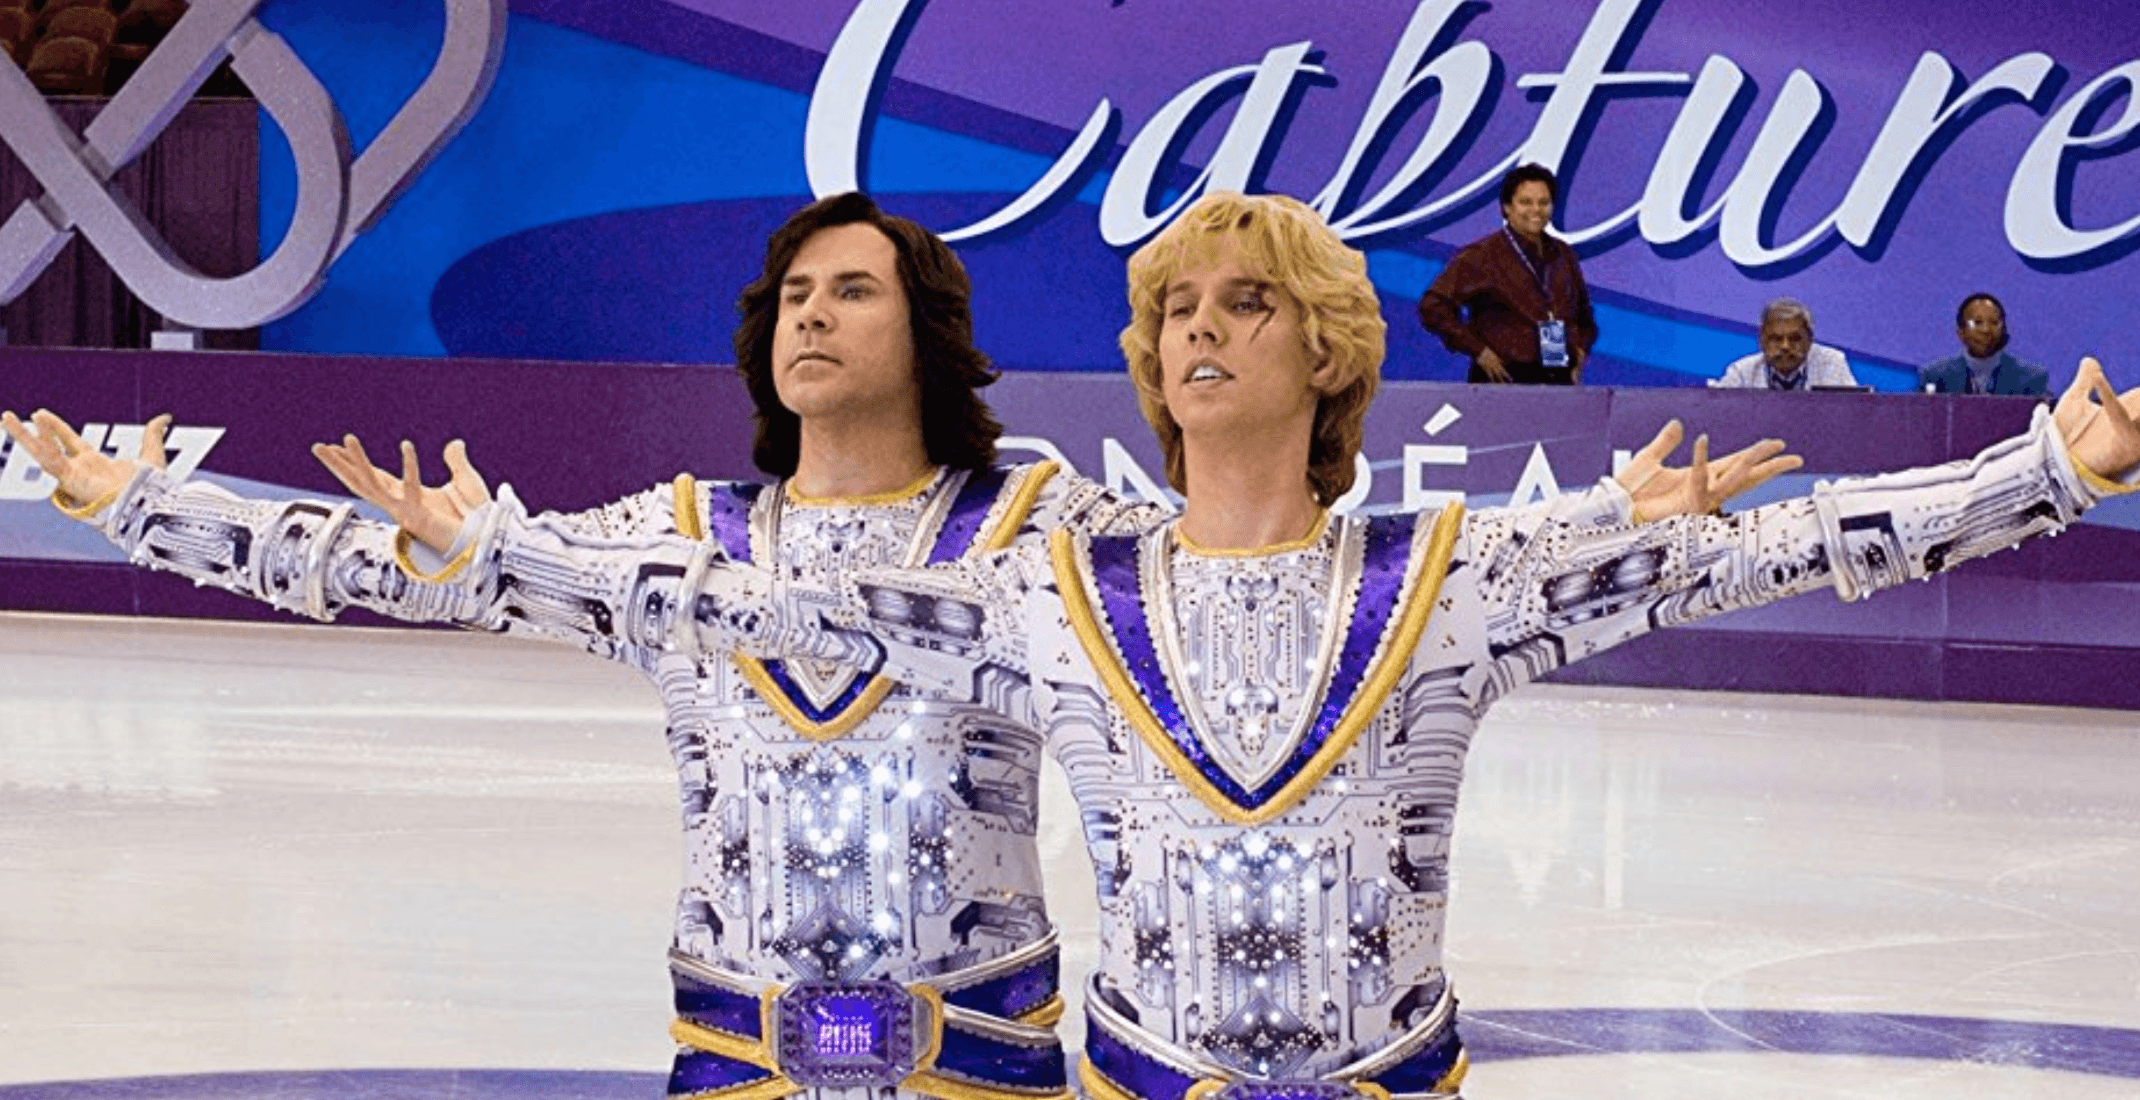 Olympic figure skating is making us nostalgic for that time 'Blades of Glory' was filmed in Montreal